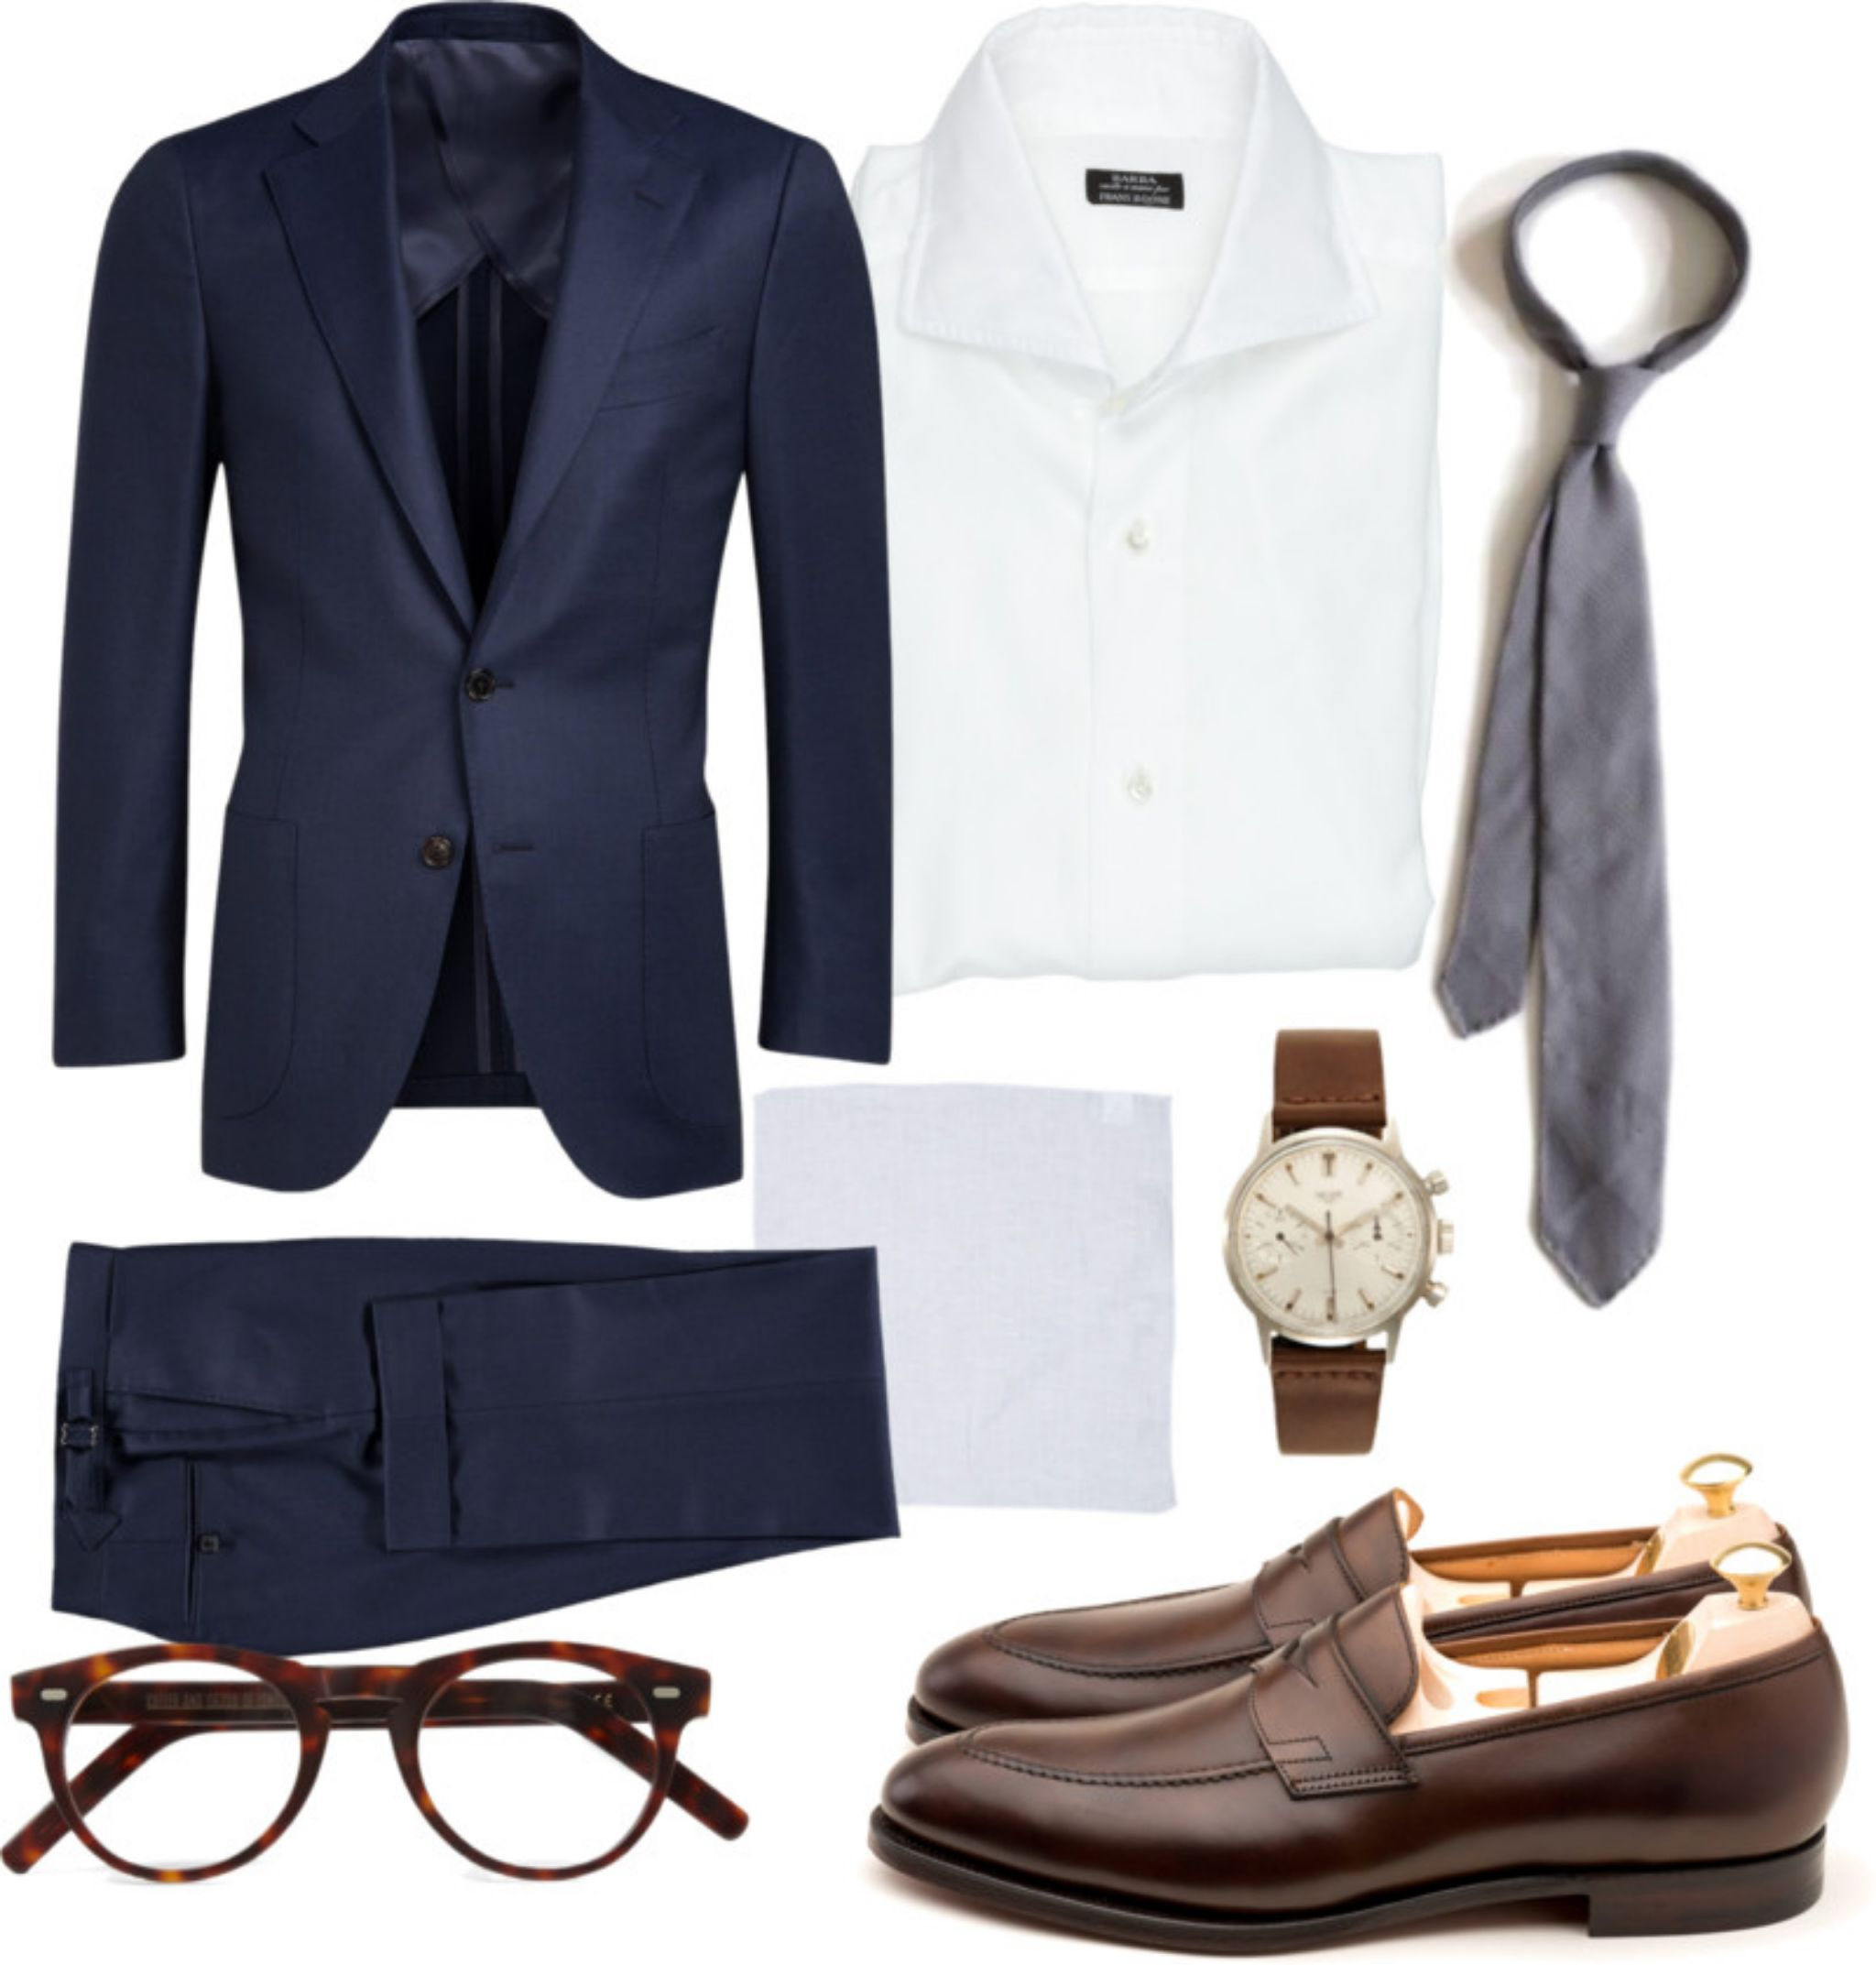 What to wear for wedding - Blue suit, white shirt, silver grenadine tie and brown loafers outfit